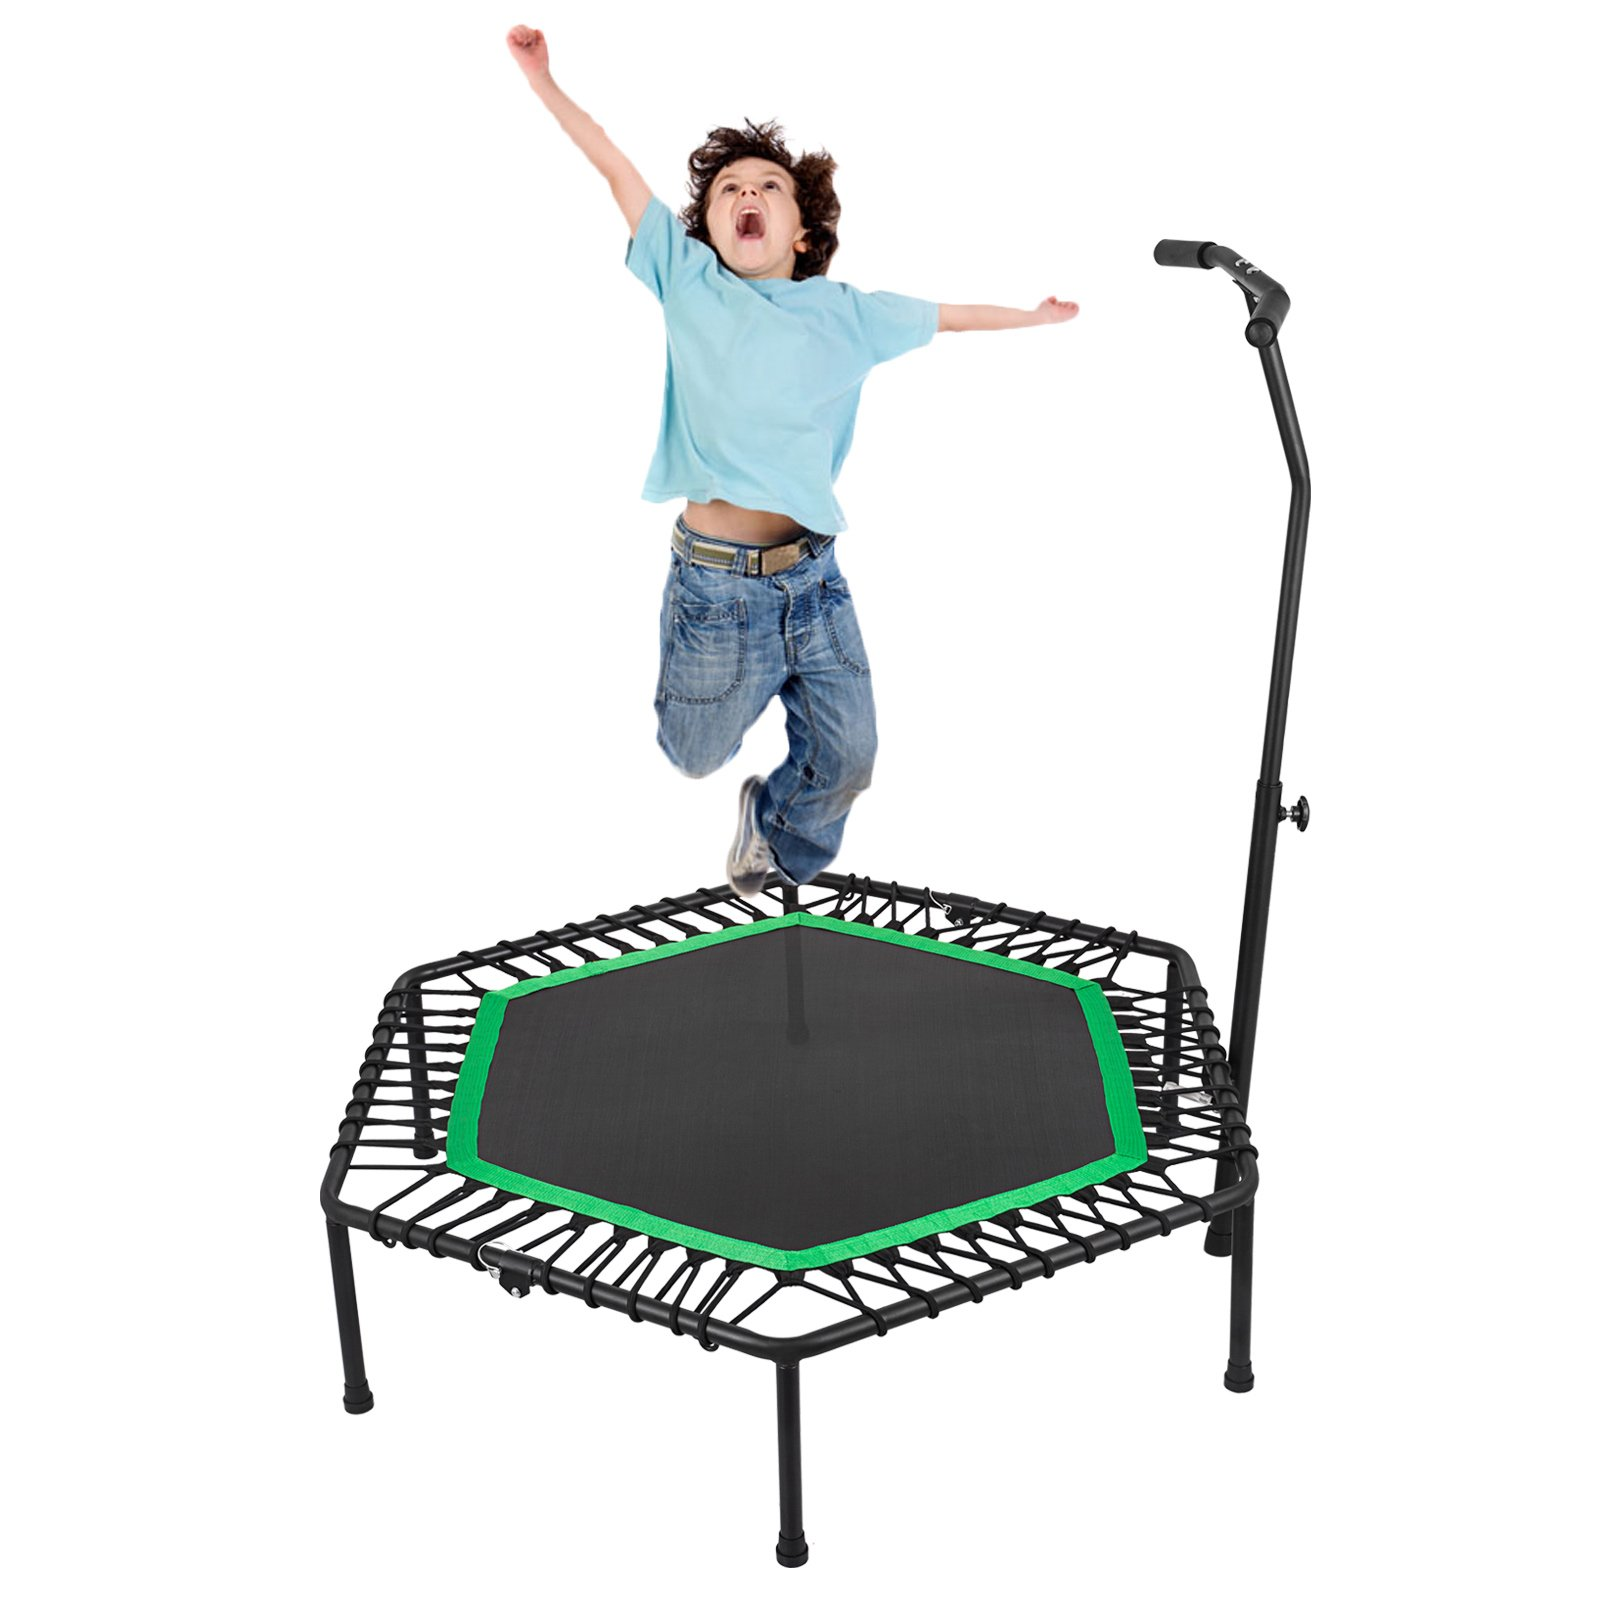 Popsport Mini Trampoline 220/330 lbs Fitness Trampoline in-HomeRebounder with Bungee Cover and Rubber Bungees for Home Cardio Exercise (50.4Inch Green)